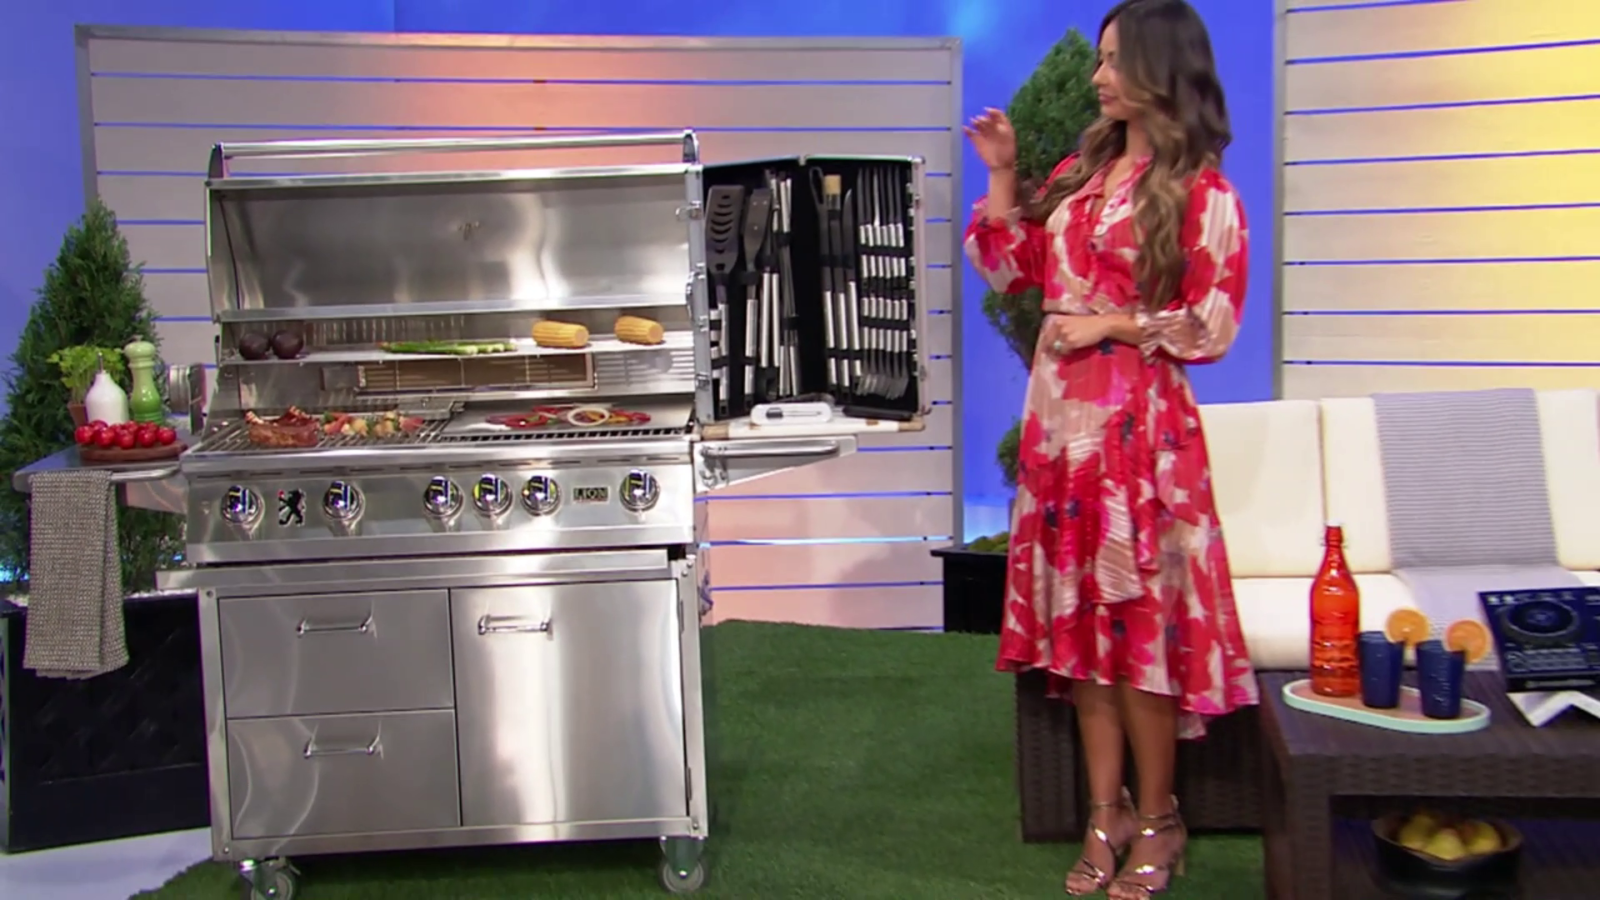 Lion Grills - Another Image of our Grill and Cart Combo on CBS' The Price is Right